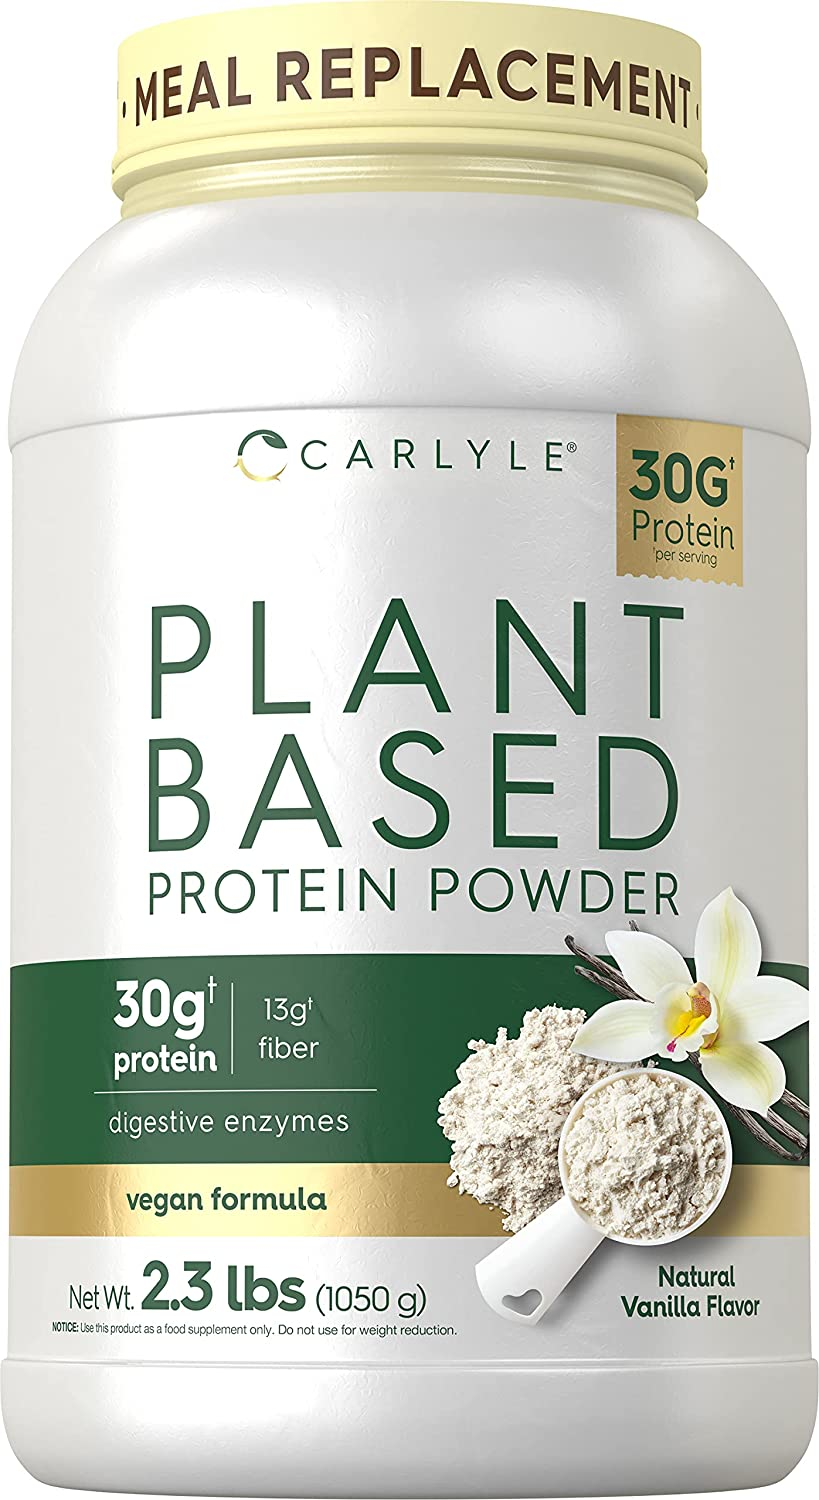 Plant Based Protein Powder   Vanilla   2.3lbs   Meal Replacement   Vegan, Non-GMO & Gluten Free Formula   Plus Superfoods   by Carlyle